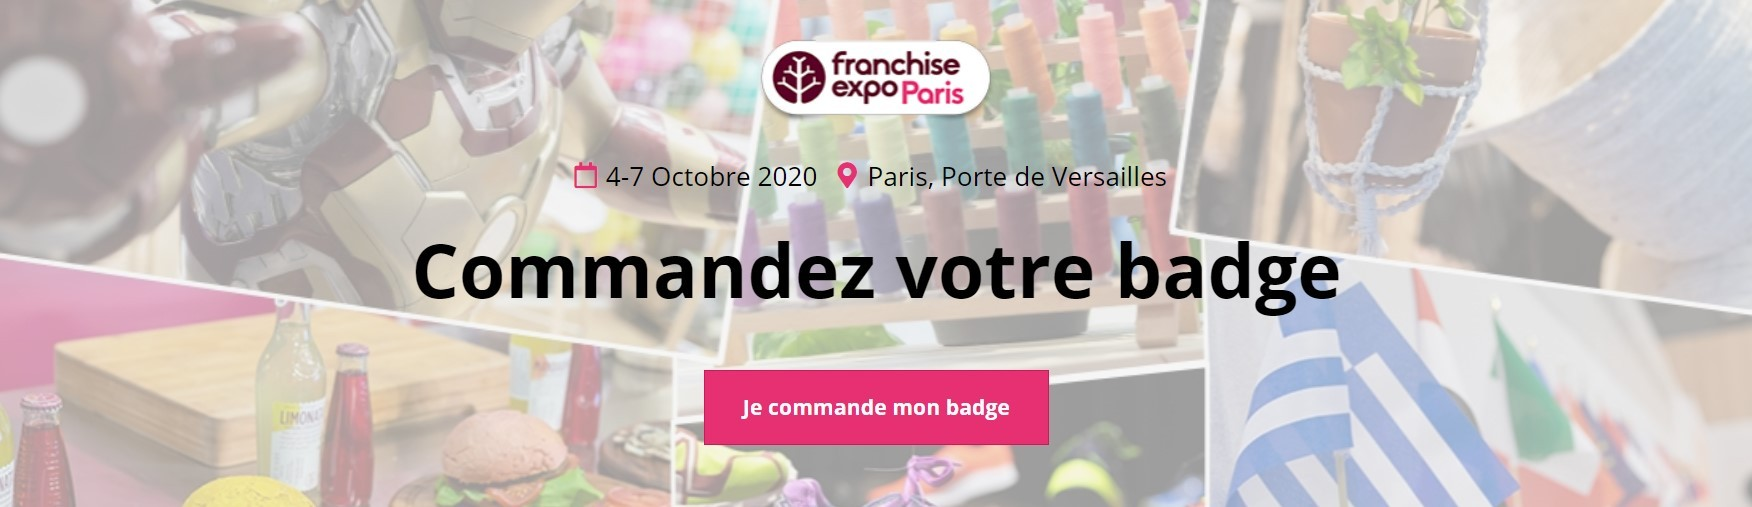 Franchise Expo Paris 2020 badge